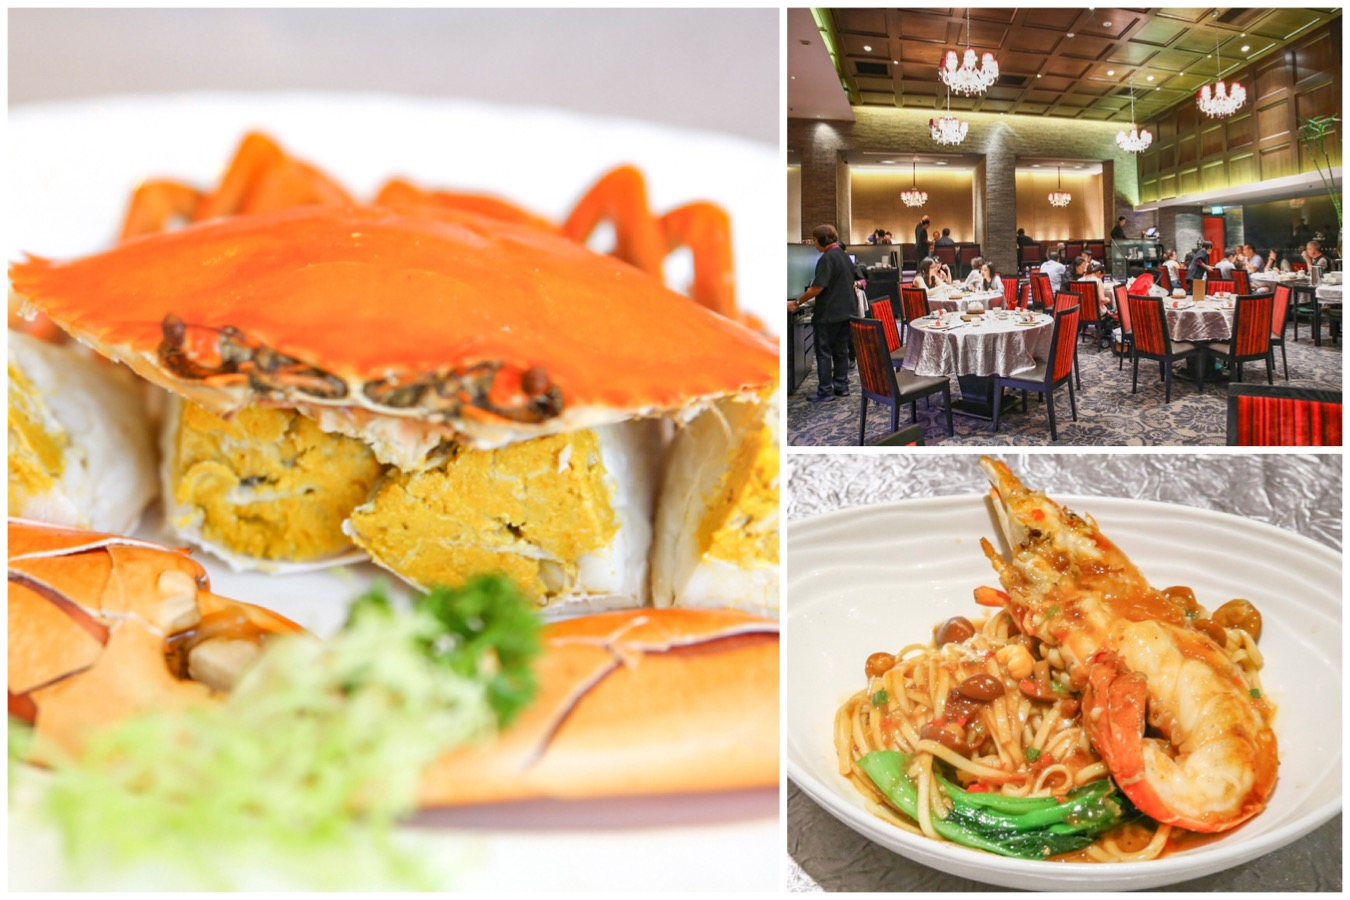 Crystal Jade Golden Palace - Teochew And Cantonese Specialities At Paragon. 1 Michelin Star